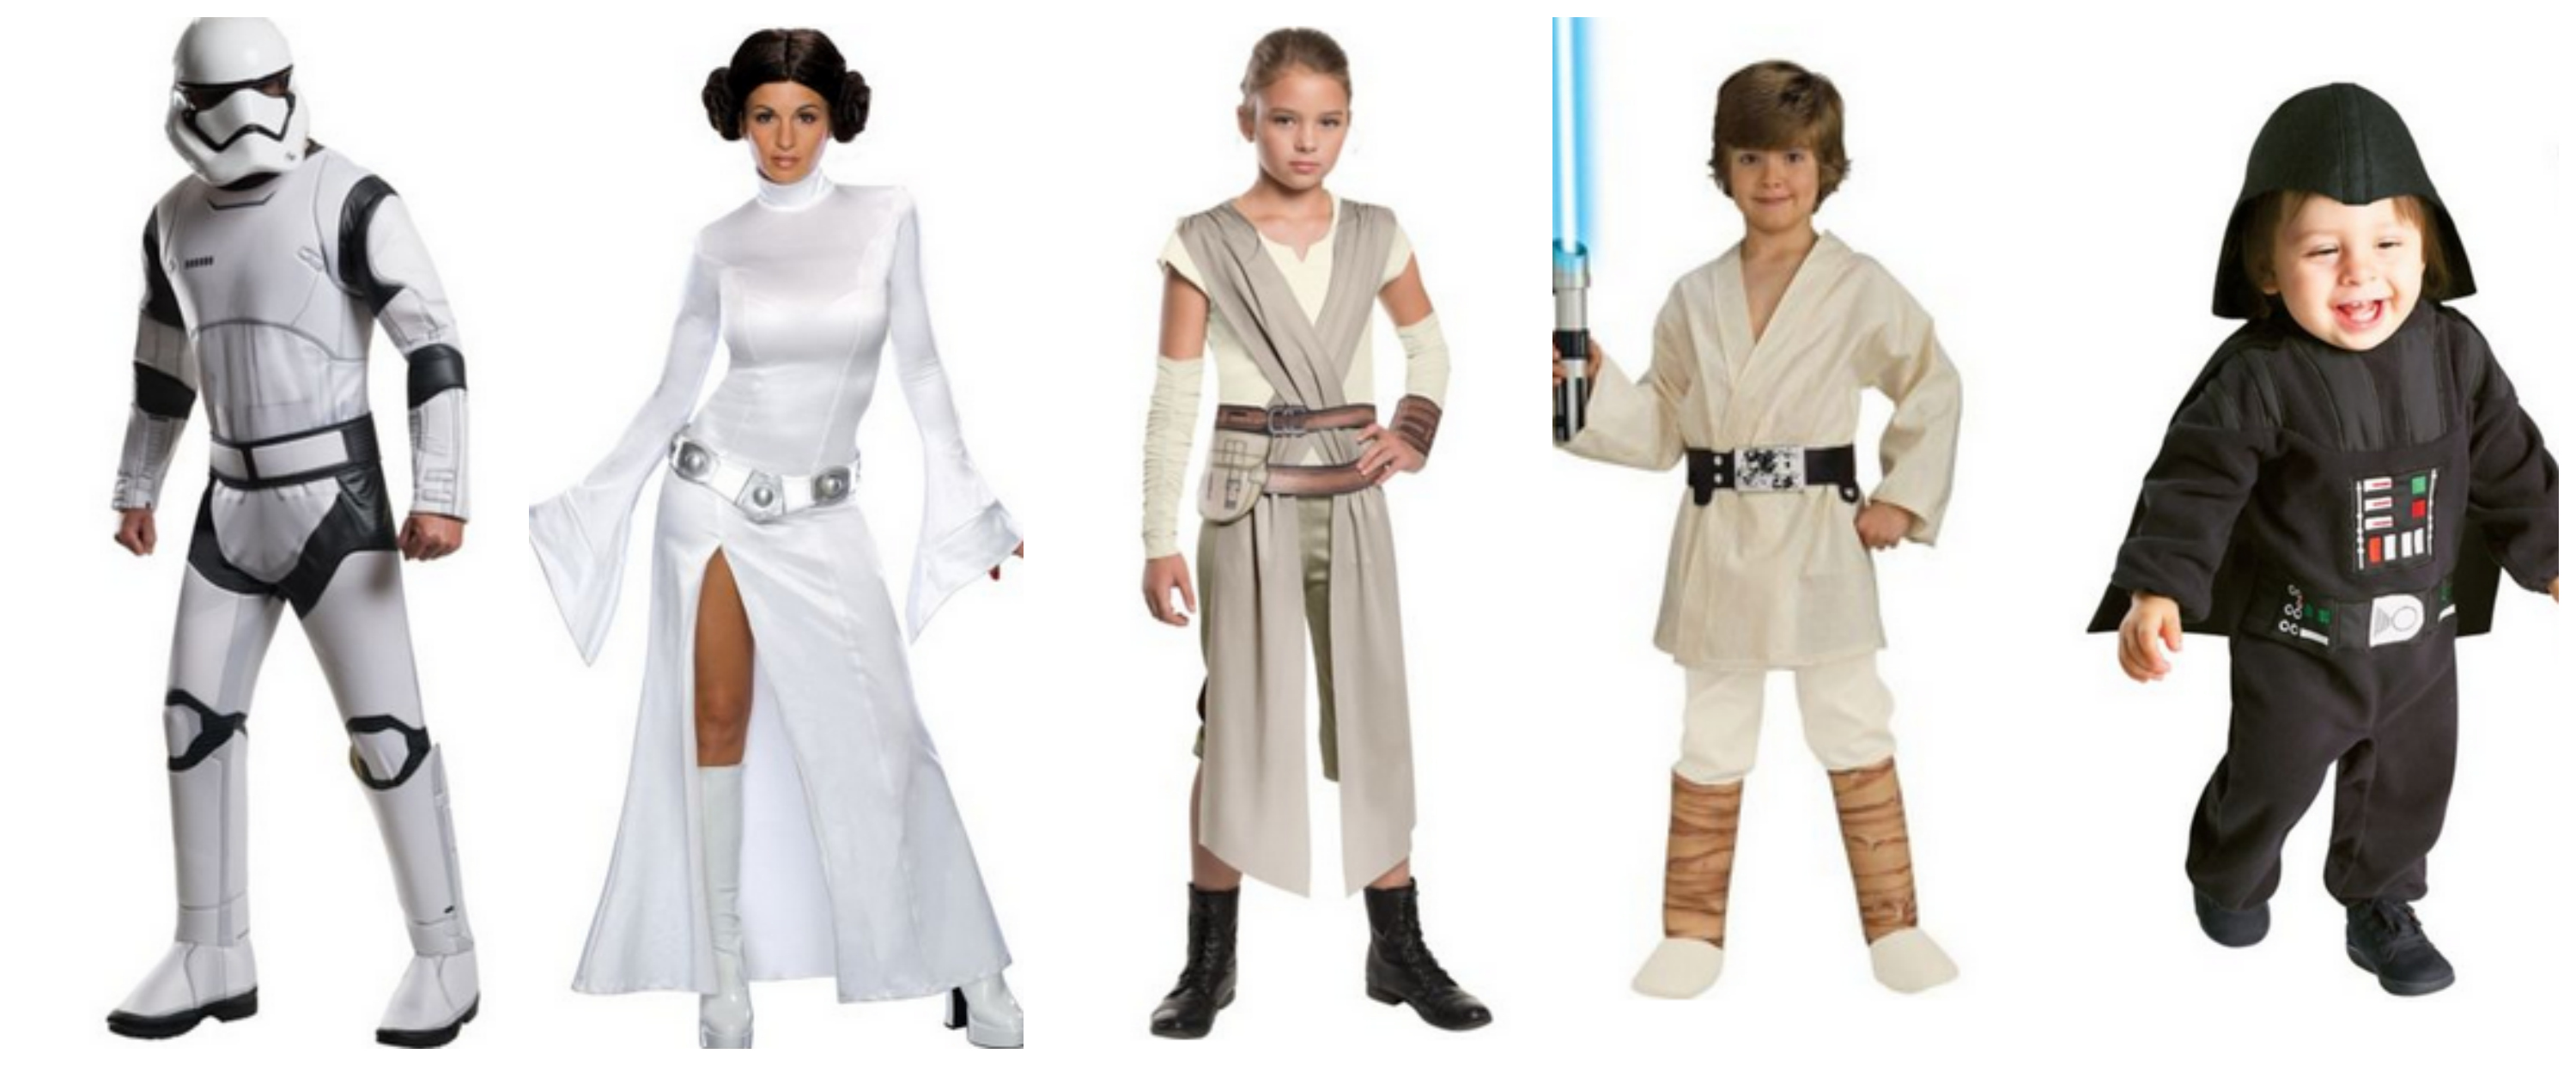 Star Wars Family Halloween Costume Ideas